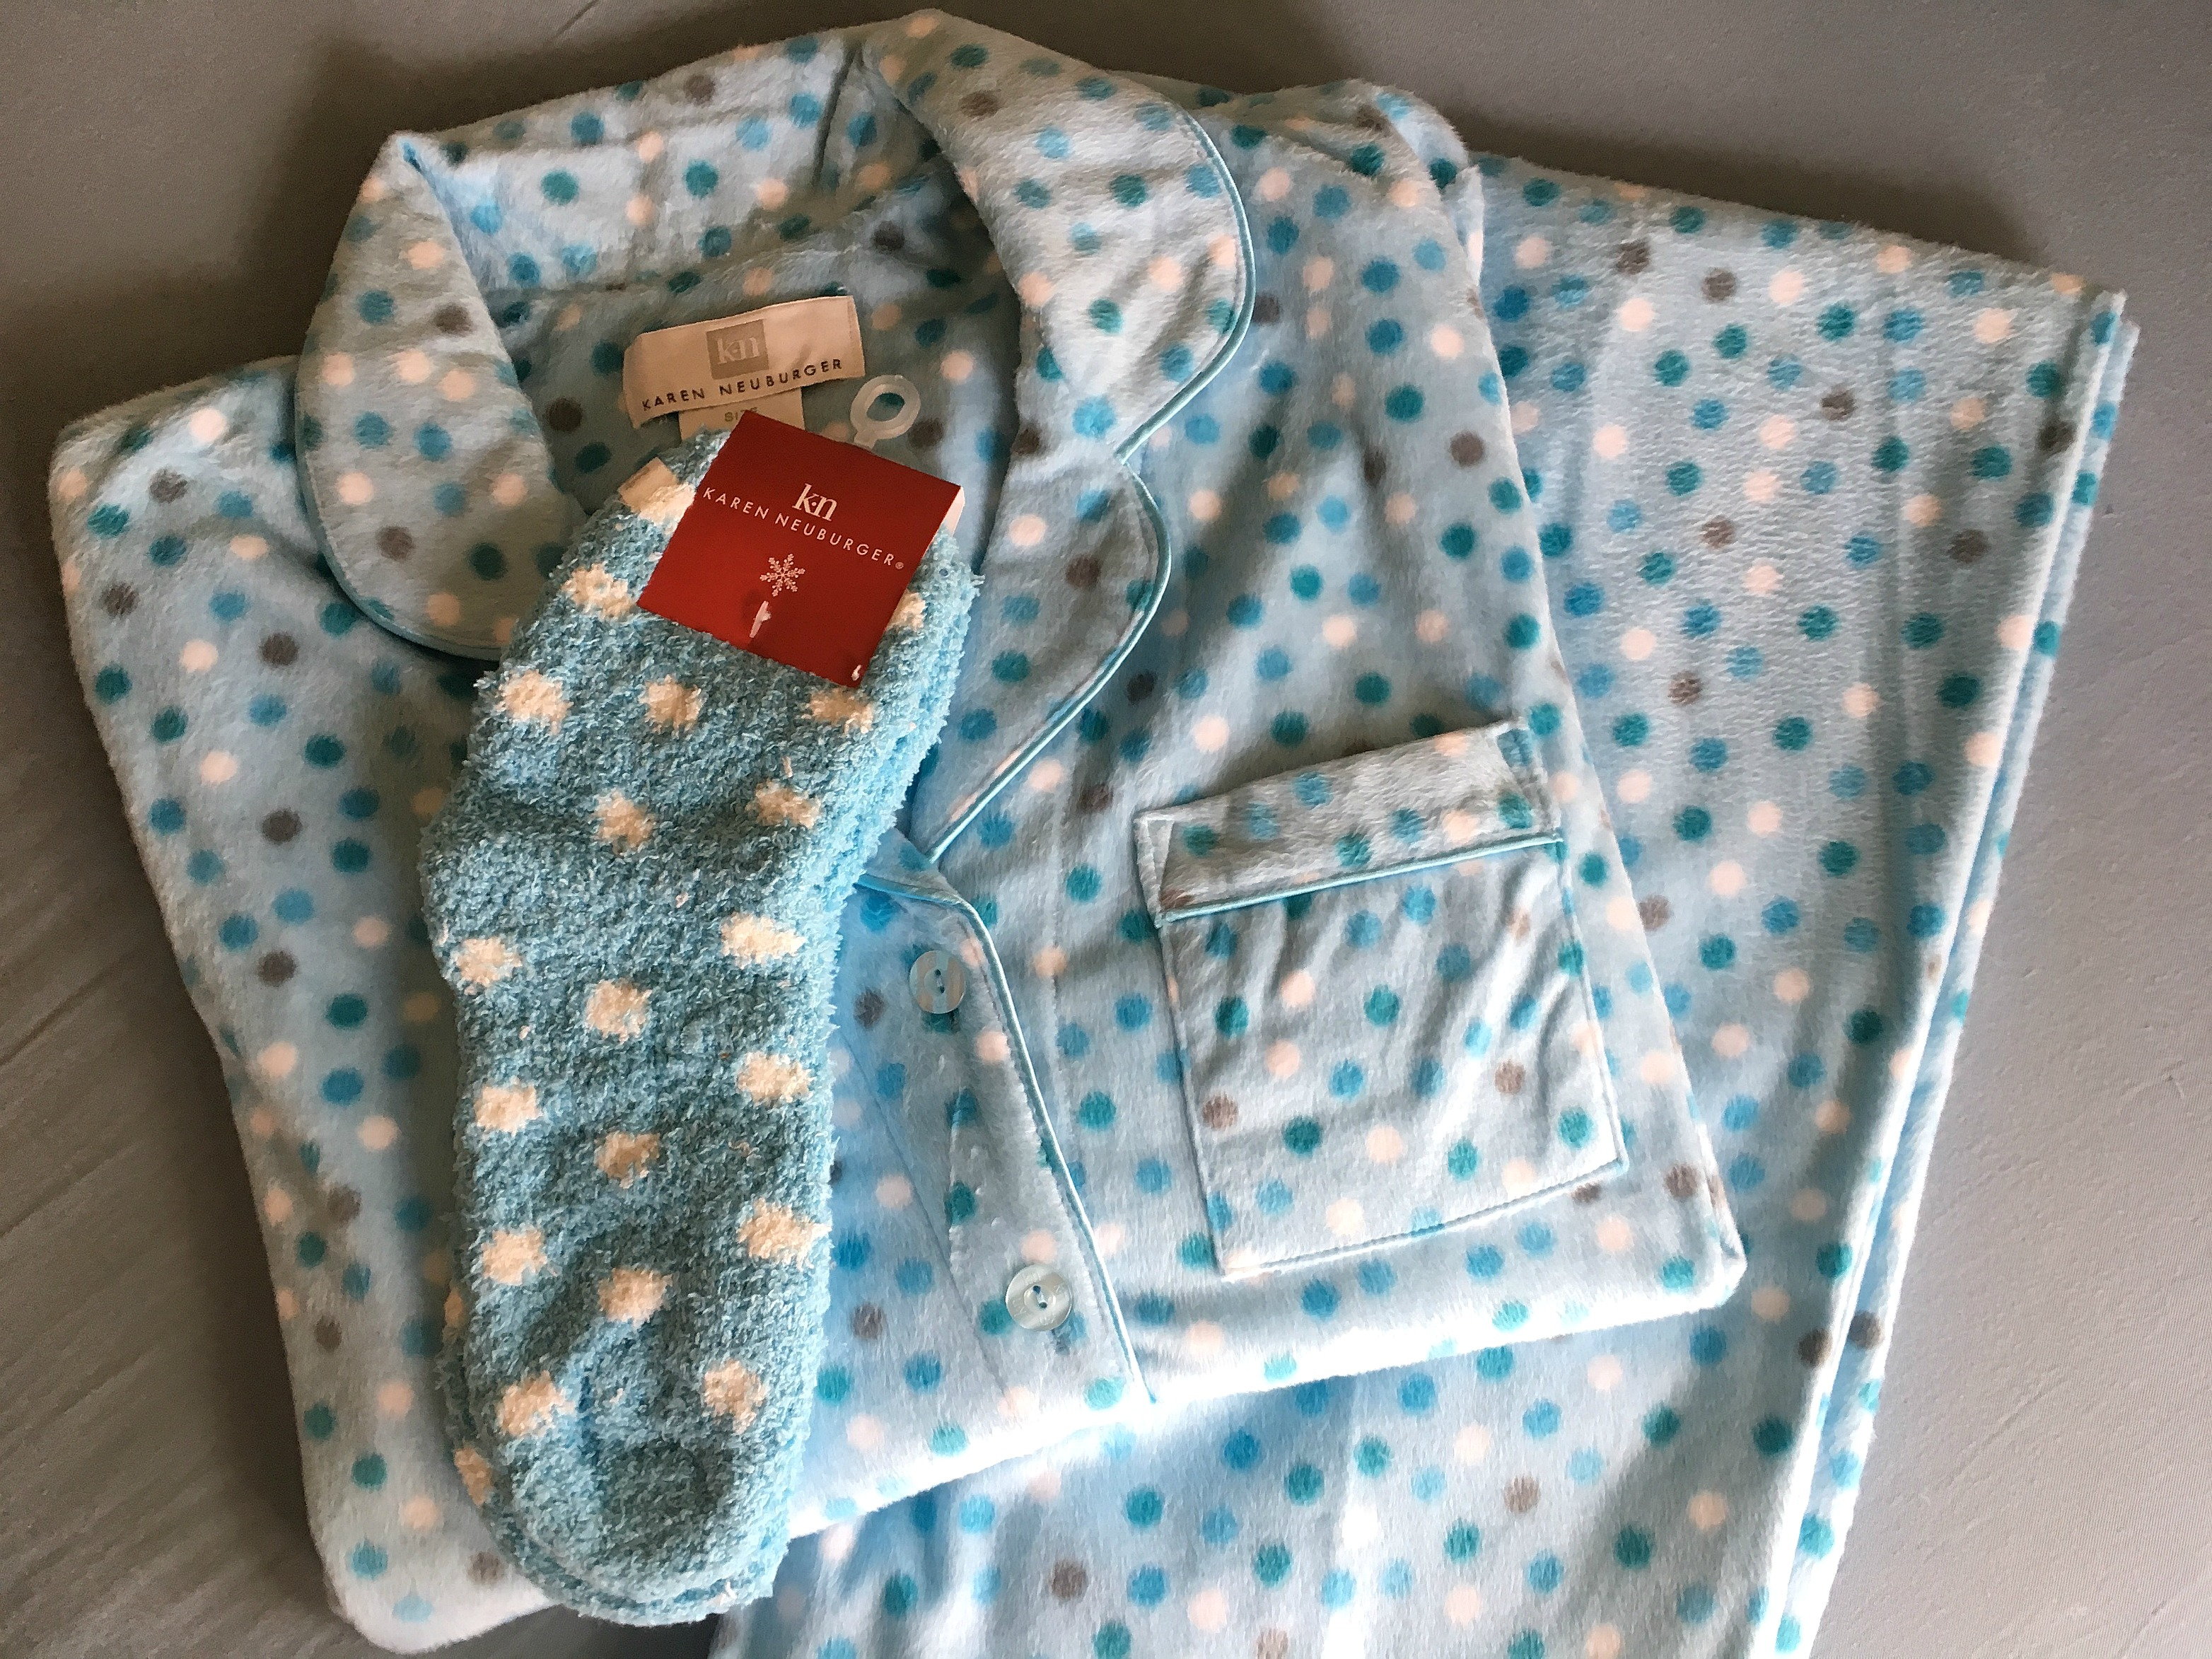 Gifts for Mom Karen Neuburger Pajamas